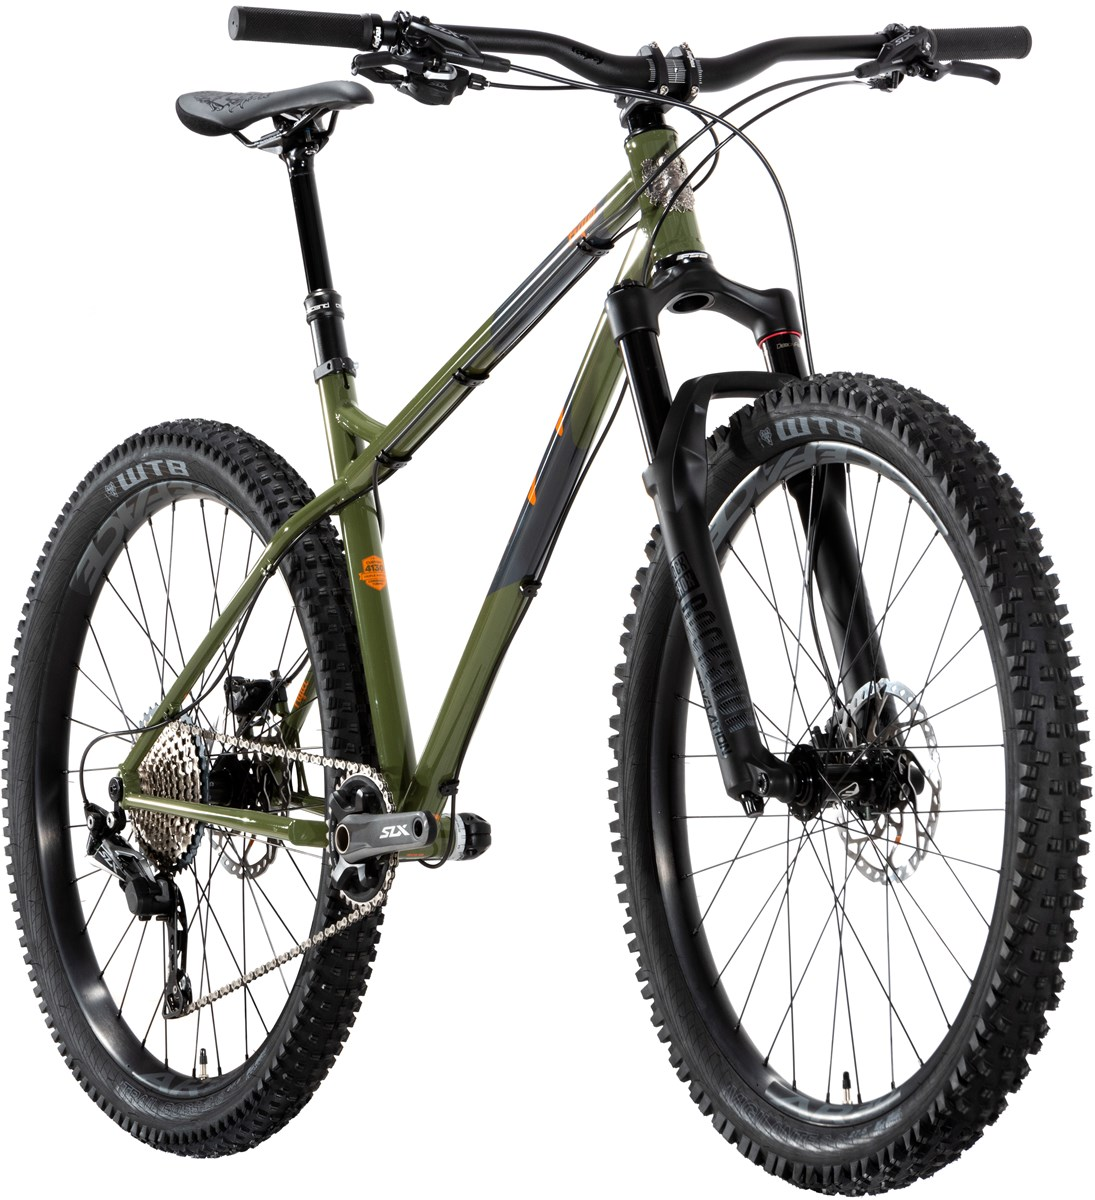 2019 Ragley Piglet Hardtail Glossy Green Mountain Bike £1,749.99